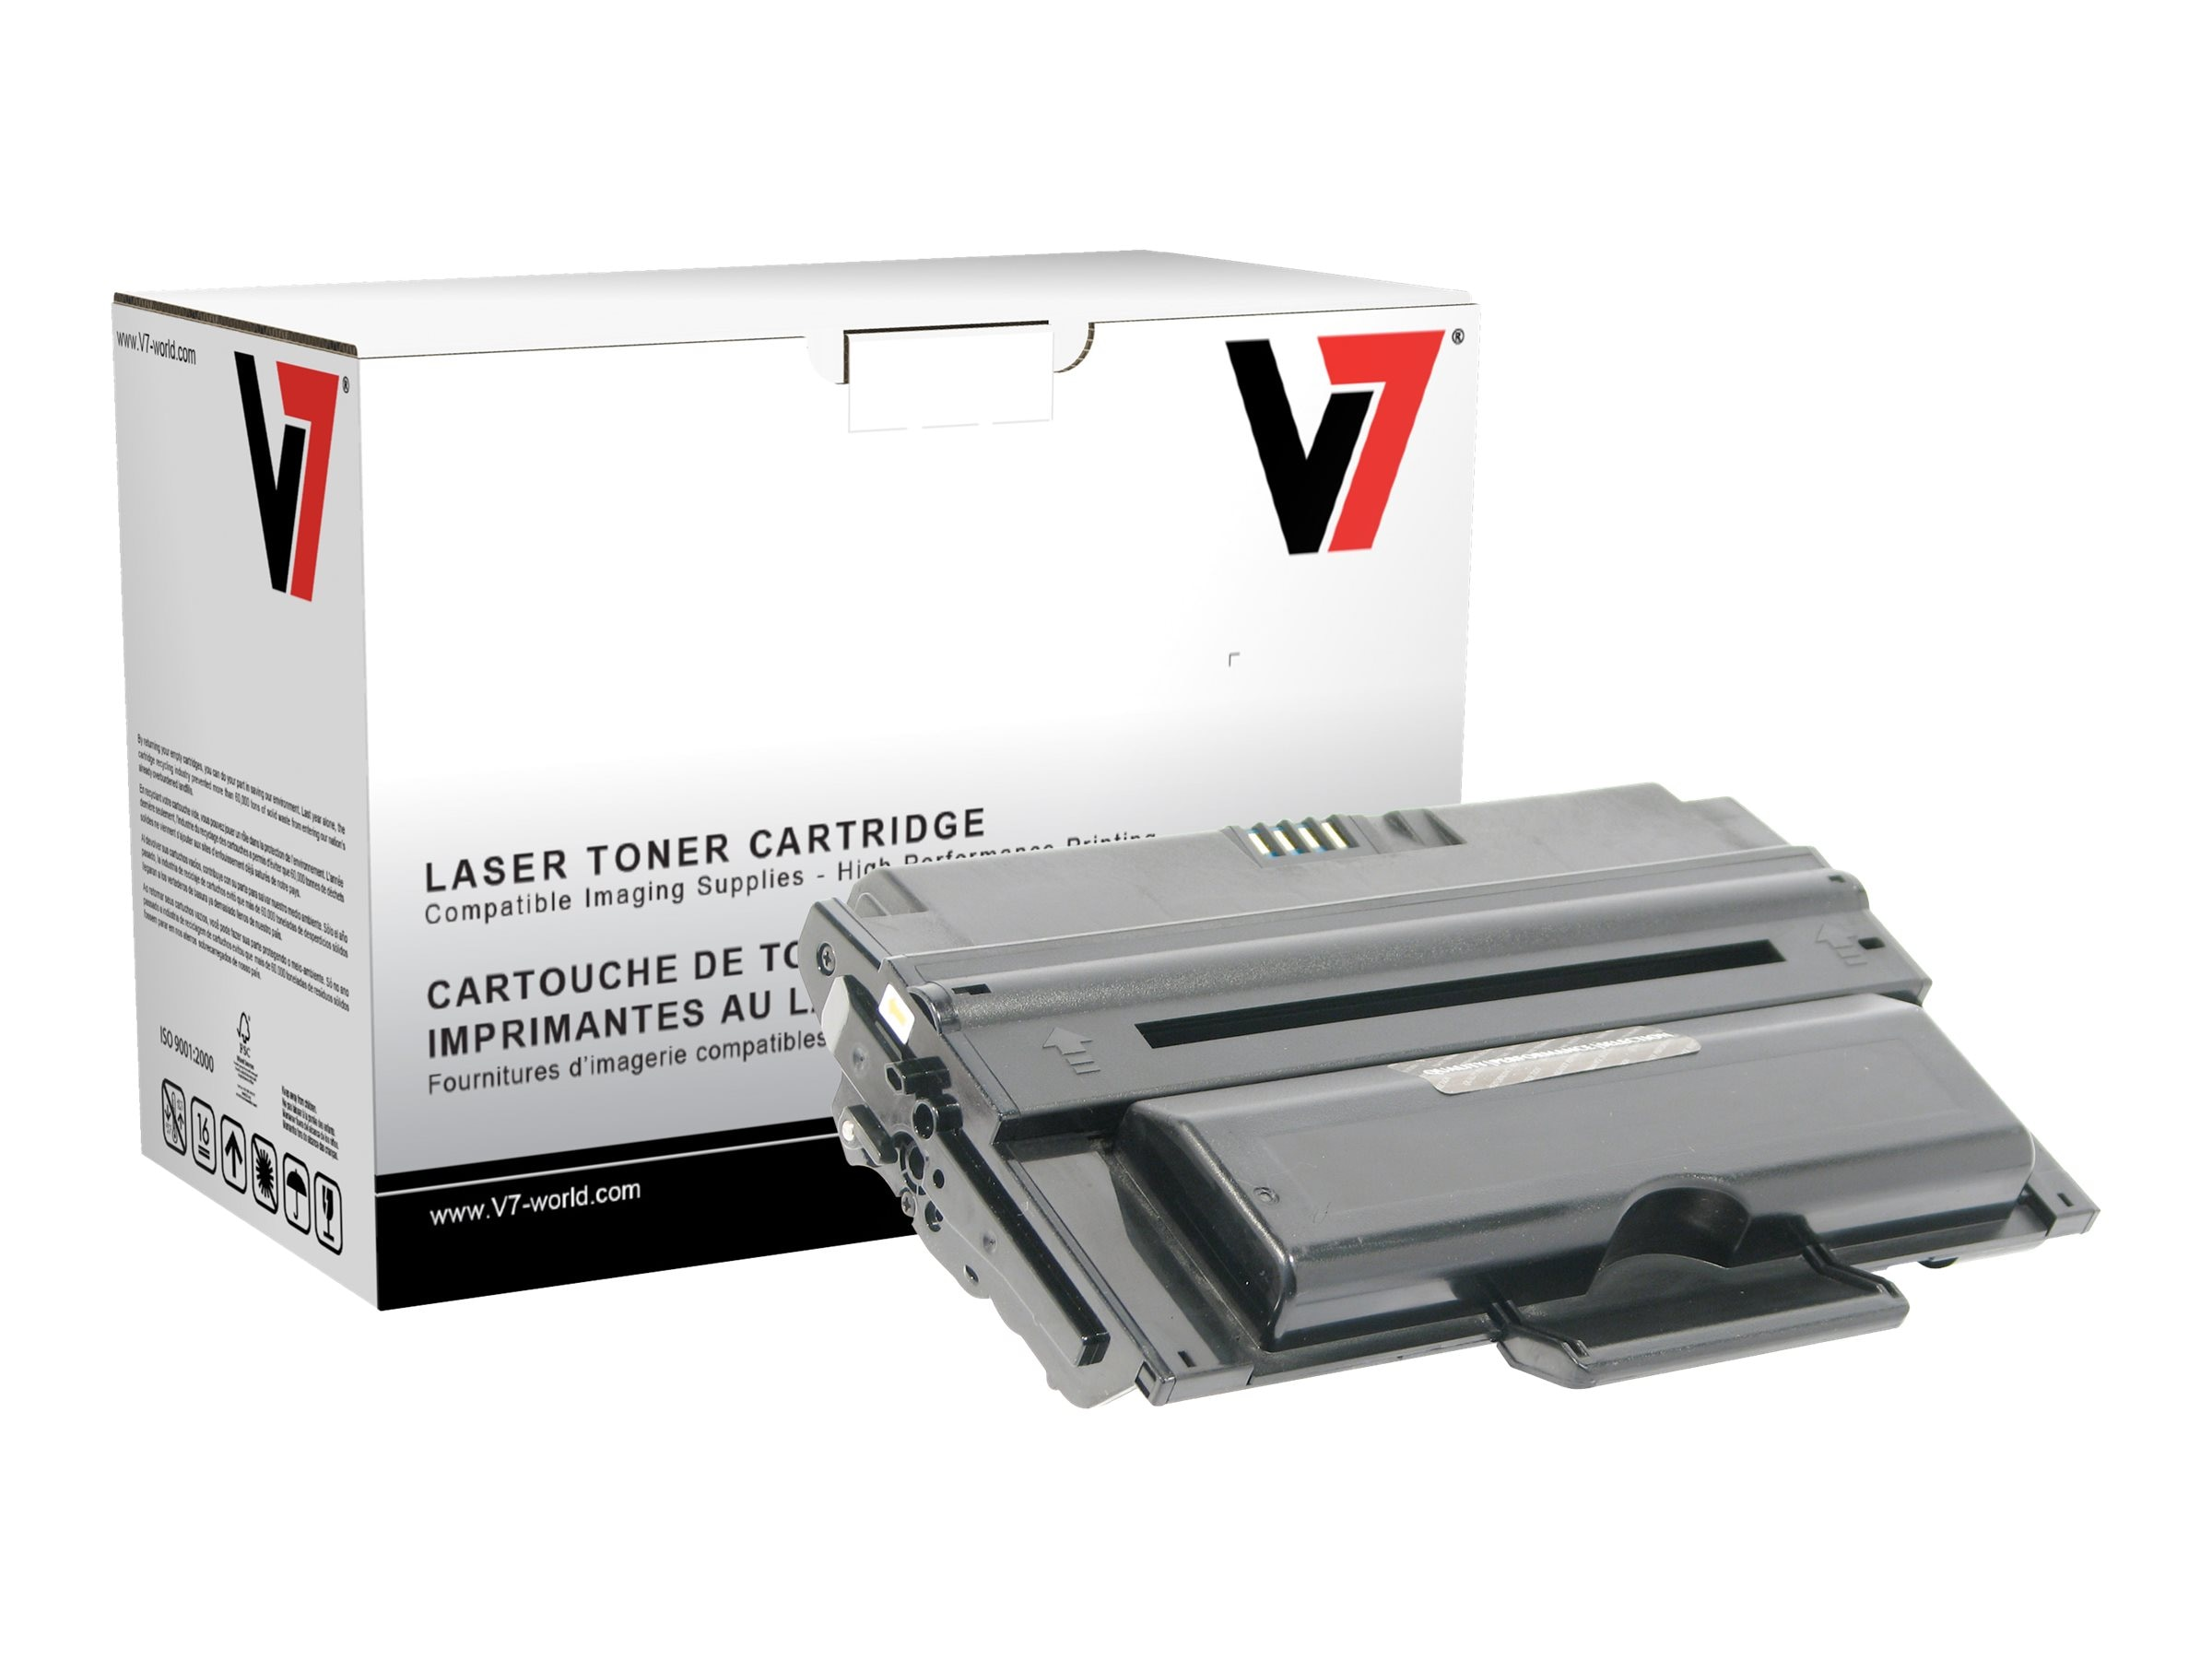 V7 330-2209 Black High Yield Toner Cartridge for Dell 2335dn Printer (TAA Compliant), TDK22335H